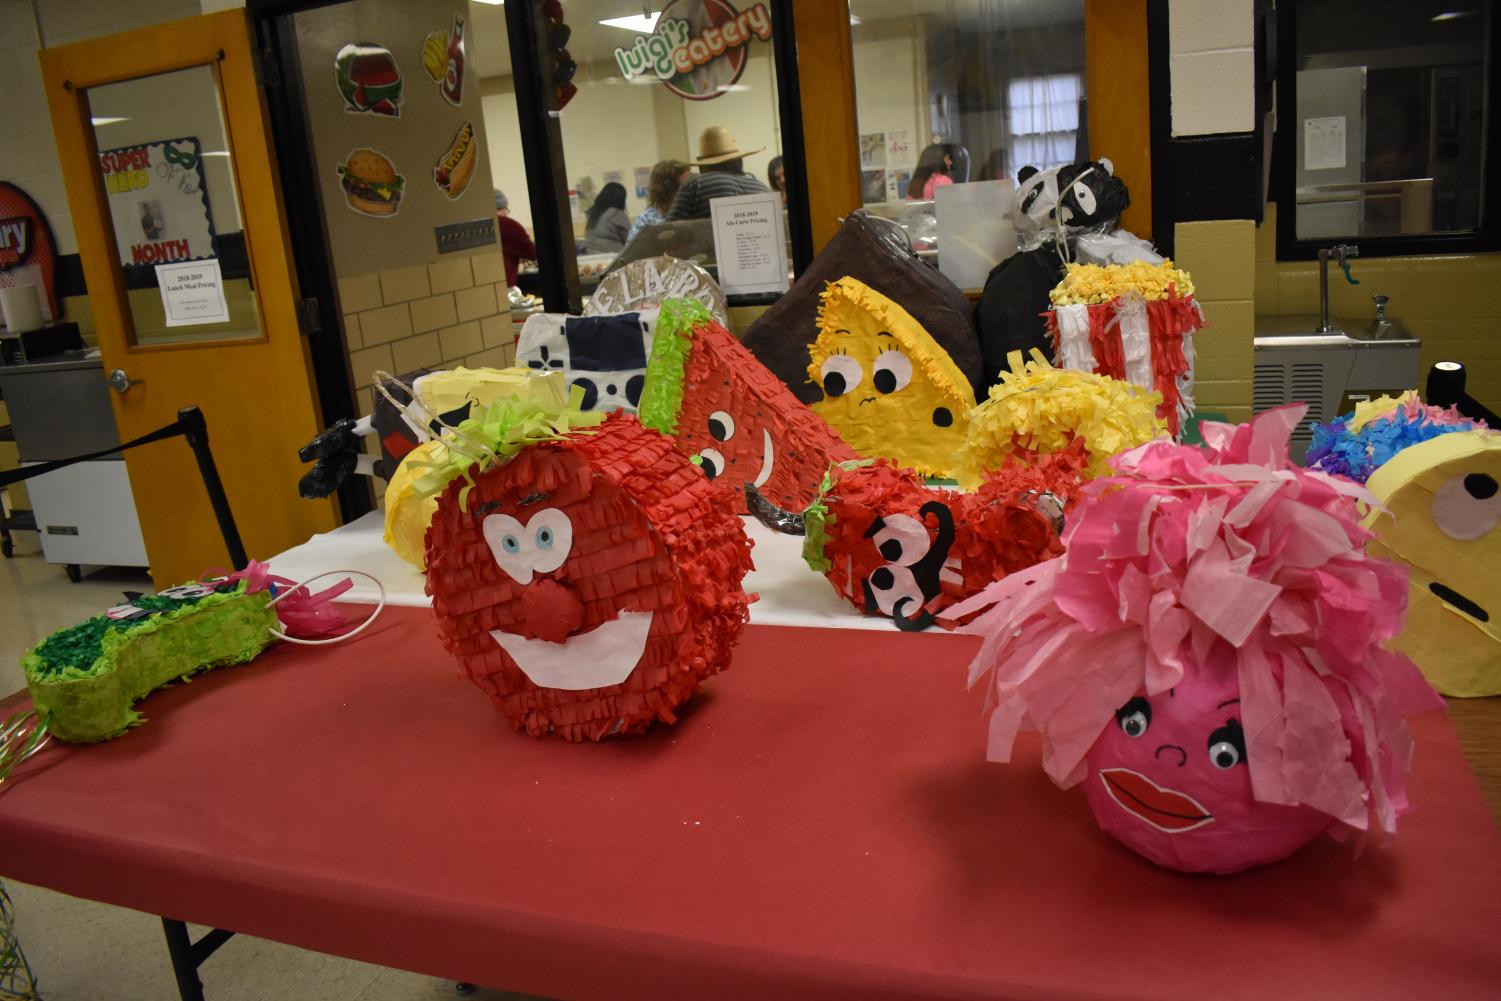 Pinatas created by High School students are ready for the lottery at the Cinco de Mayo Festival on May 6 at the Elementary school